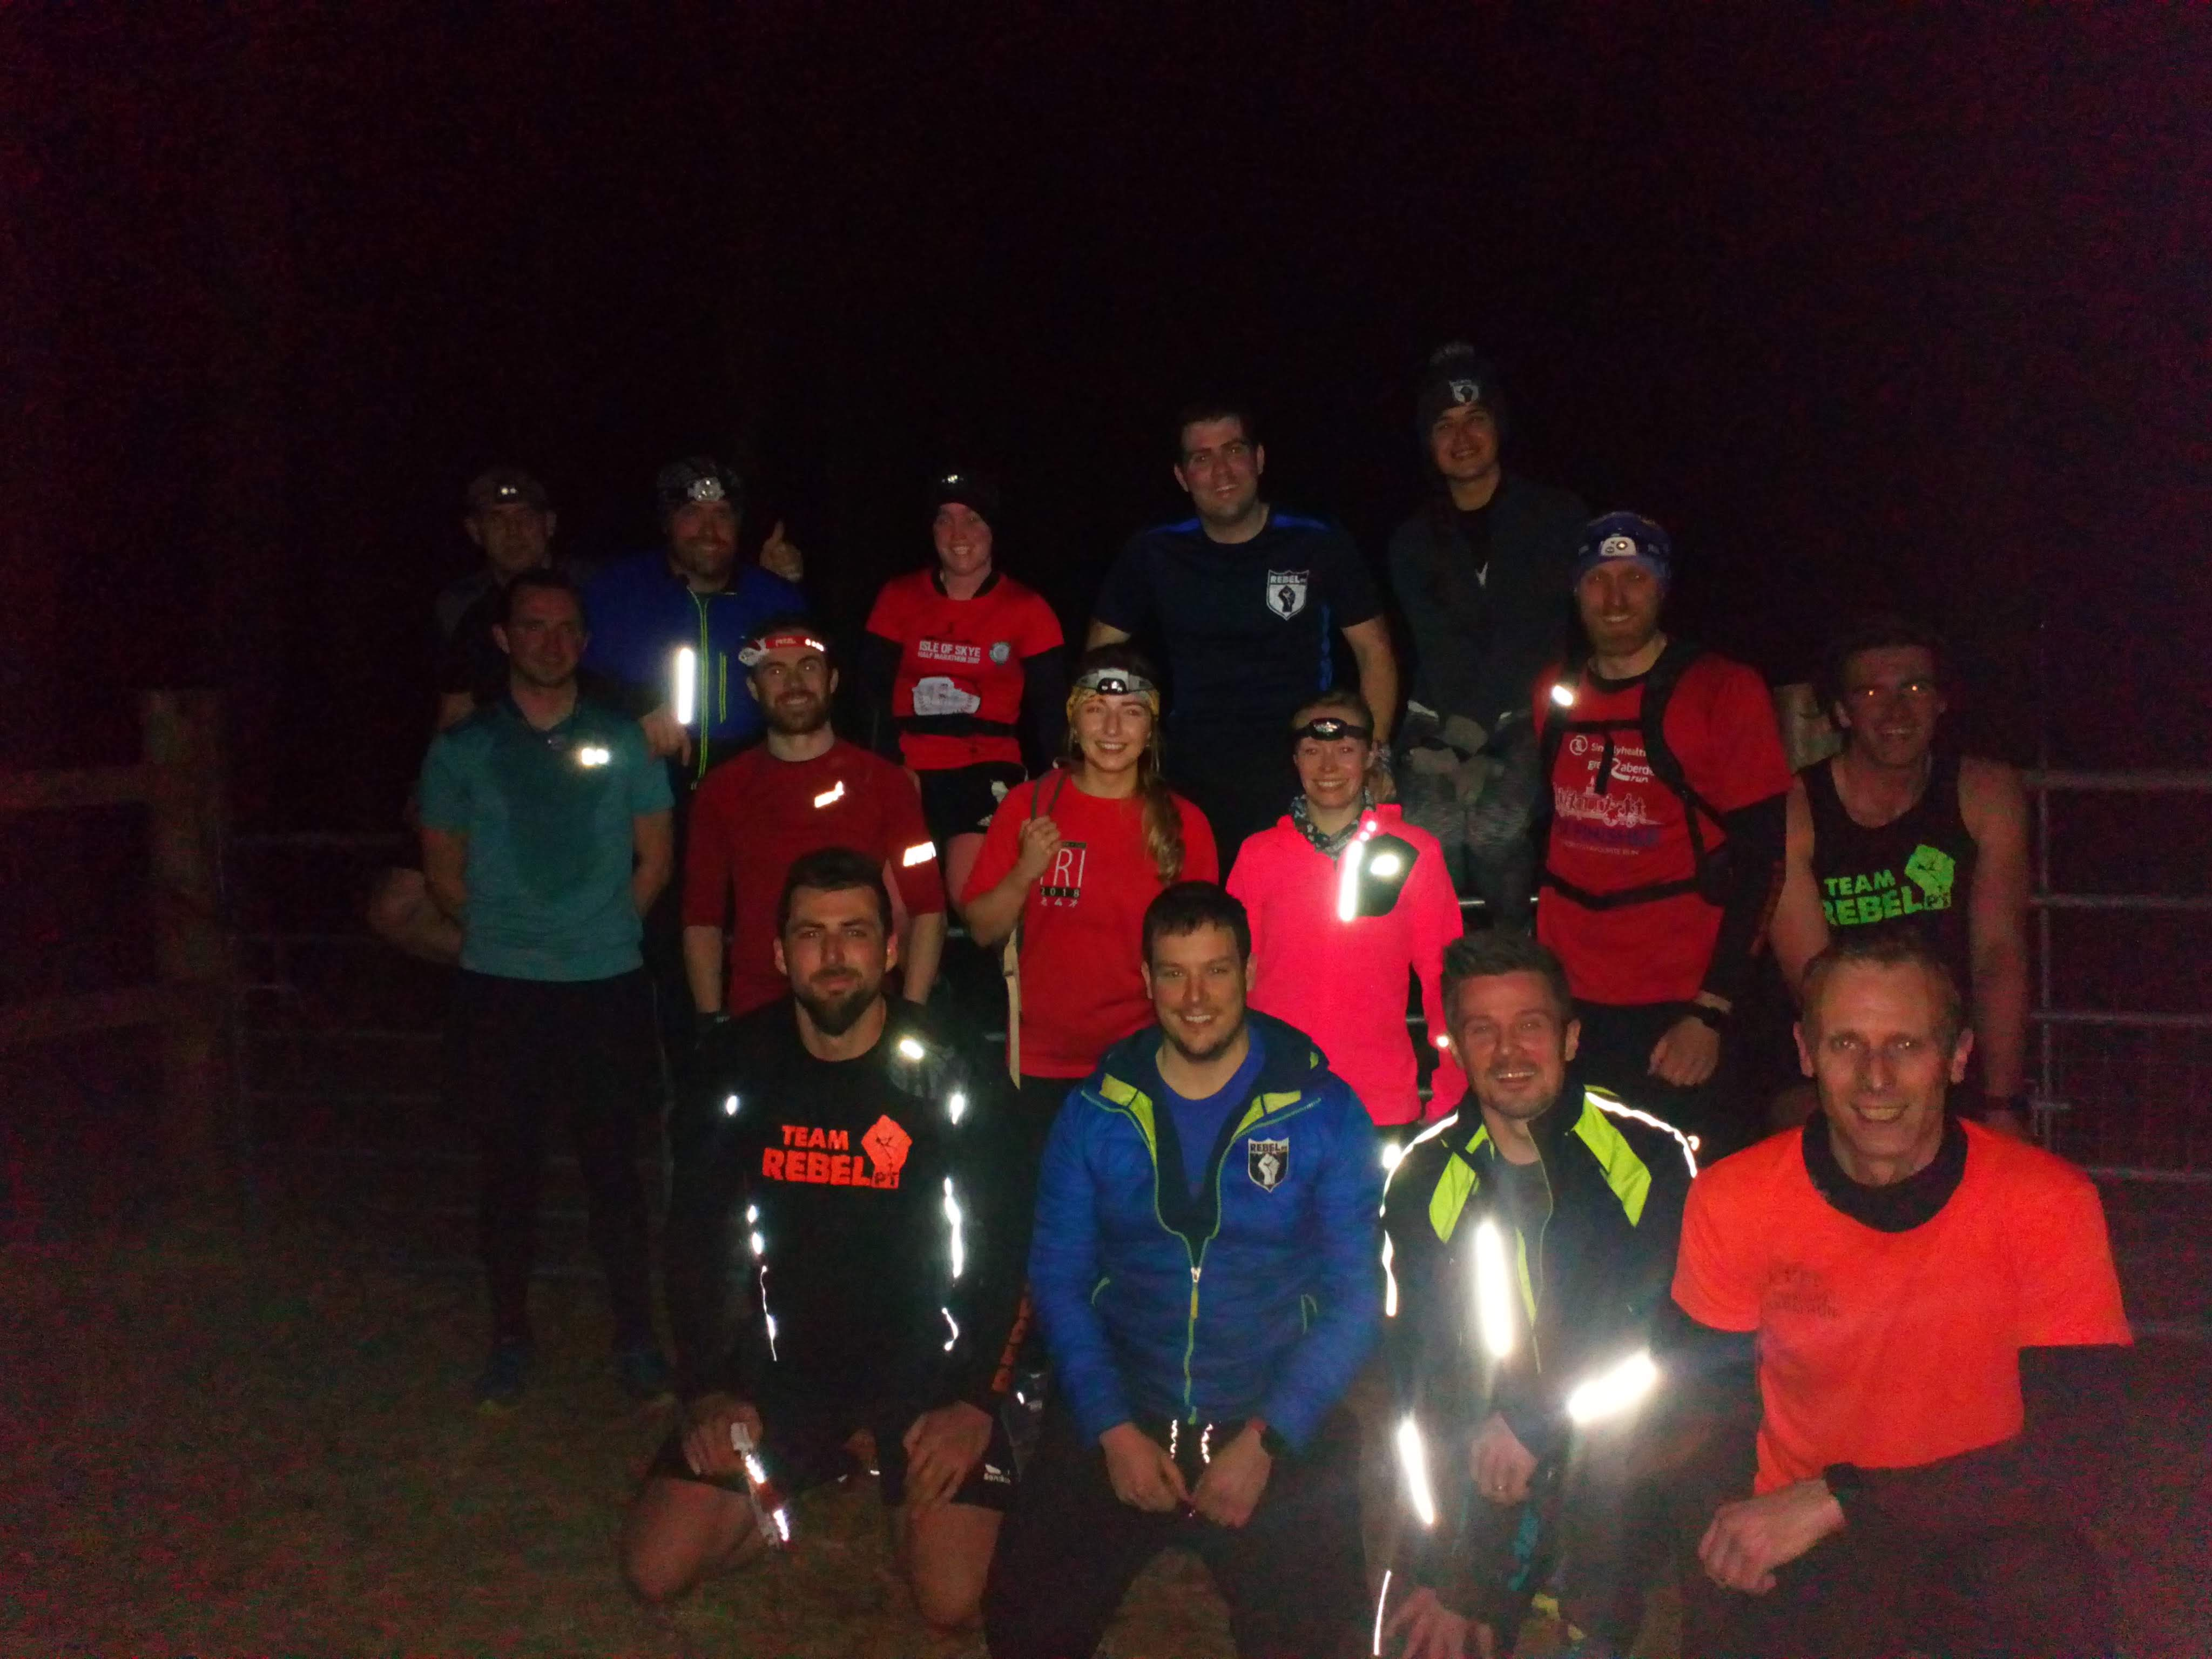 Scotty hill head torch time trial